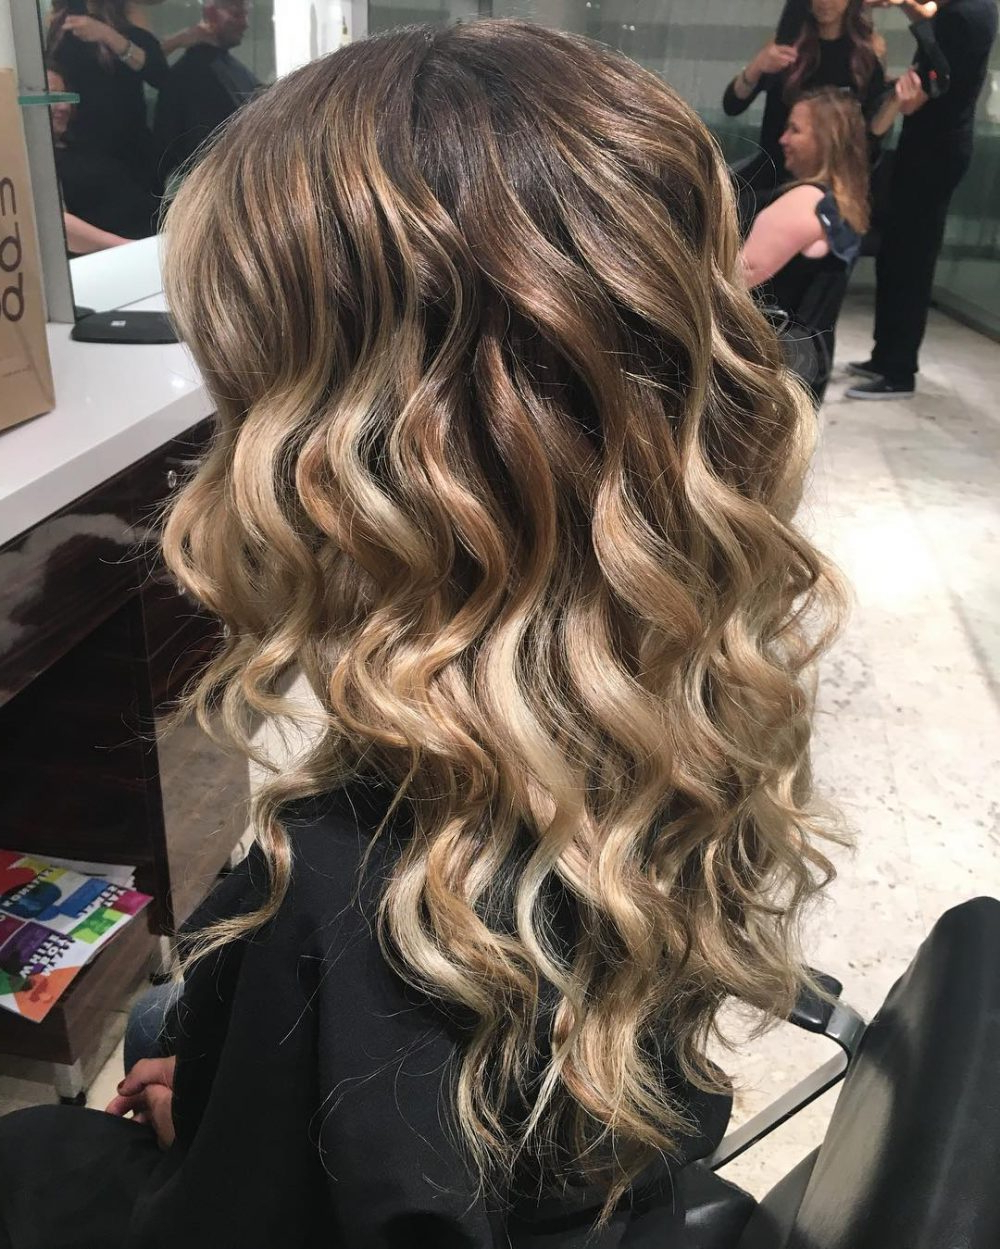 2018 Curly Medium Hairstyles For Prom Intended For Curly Hairstyles For Prom (View 2 of 20)